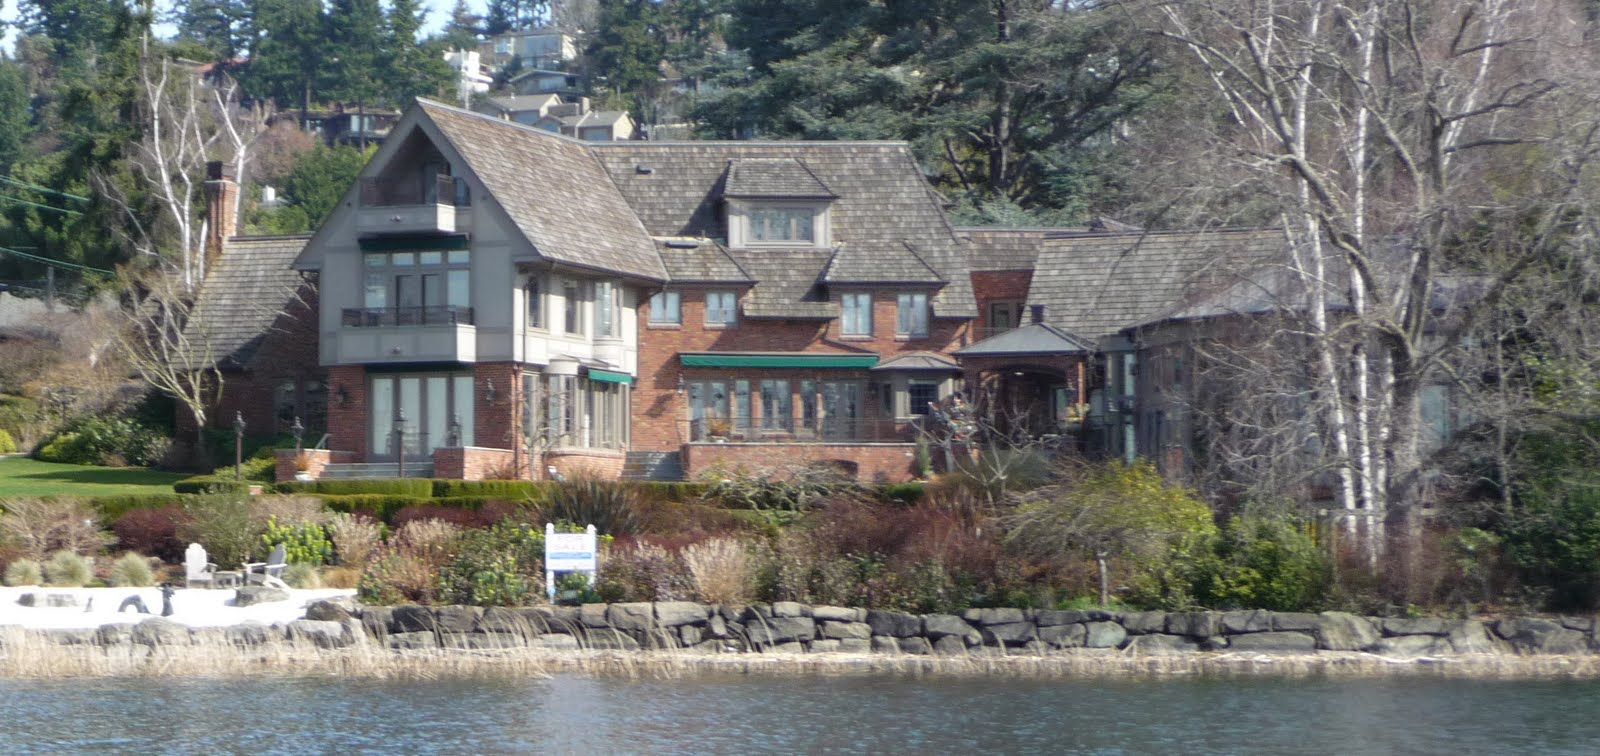 Seattle mansions mercer island proctor landing mansion for Washington home builders